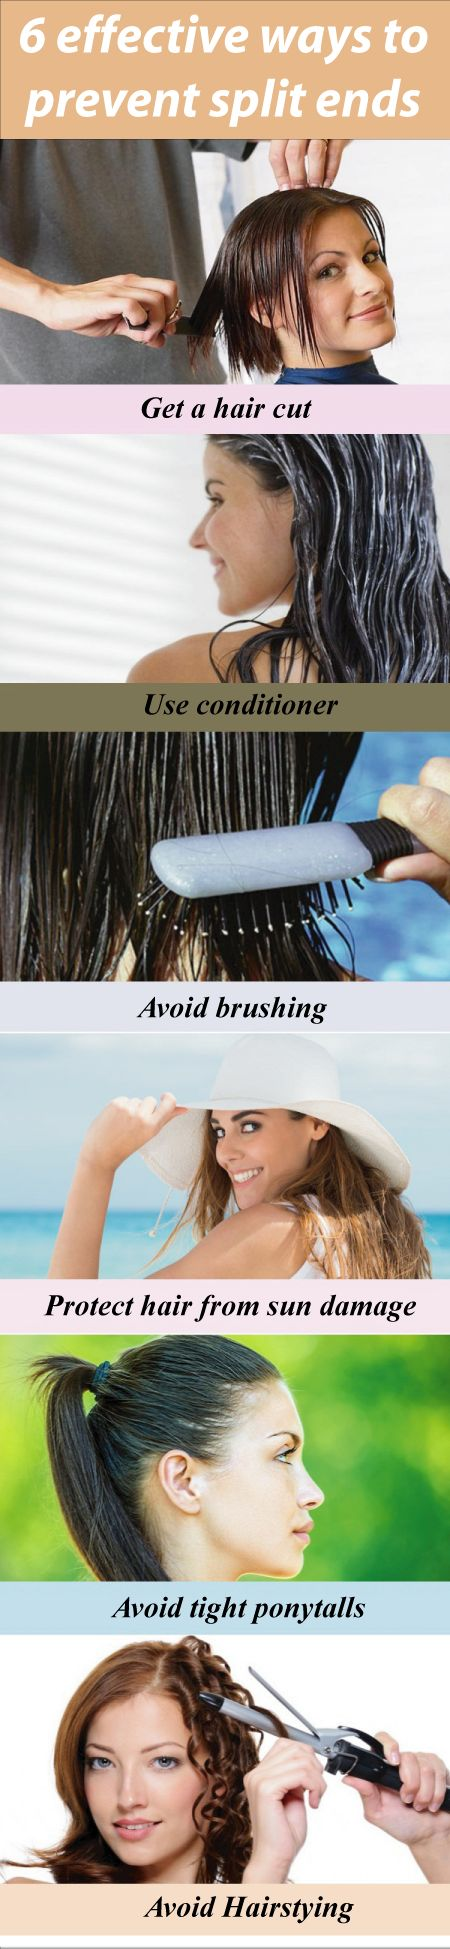 Annoyed with split end? Here are 10 effective ways to prevent hair splits.  Now ...